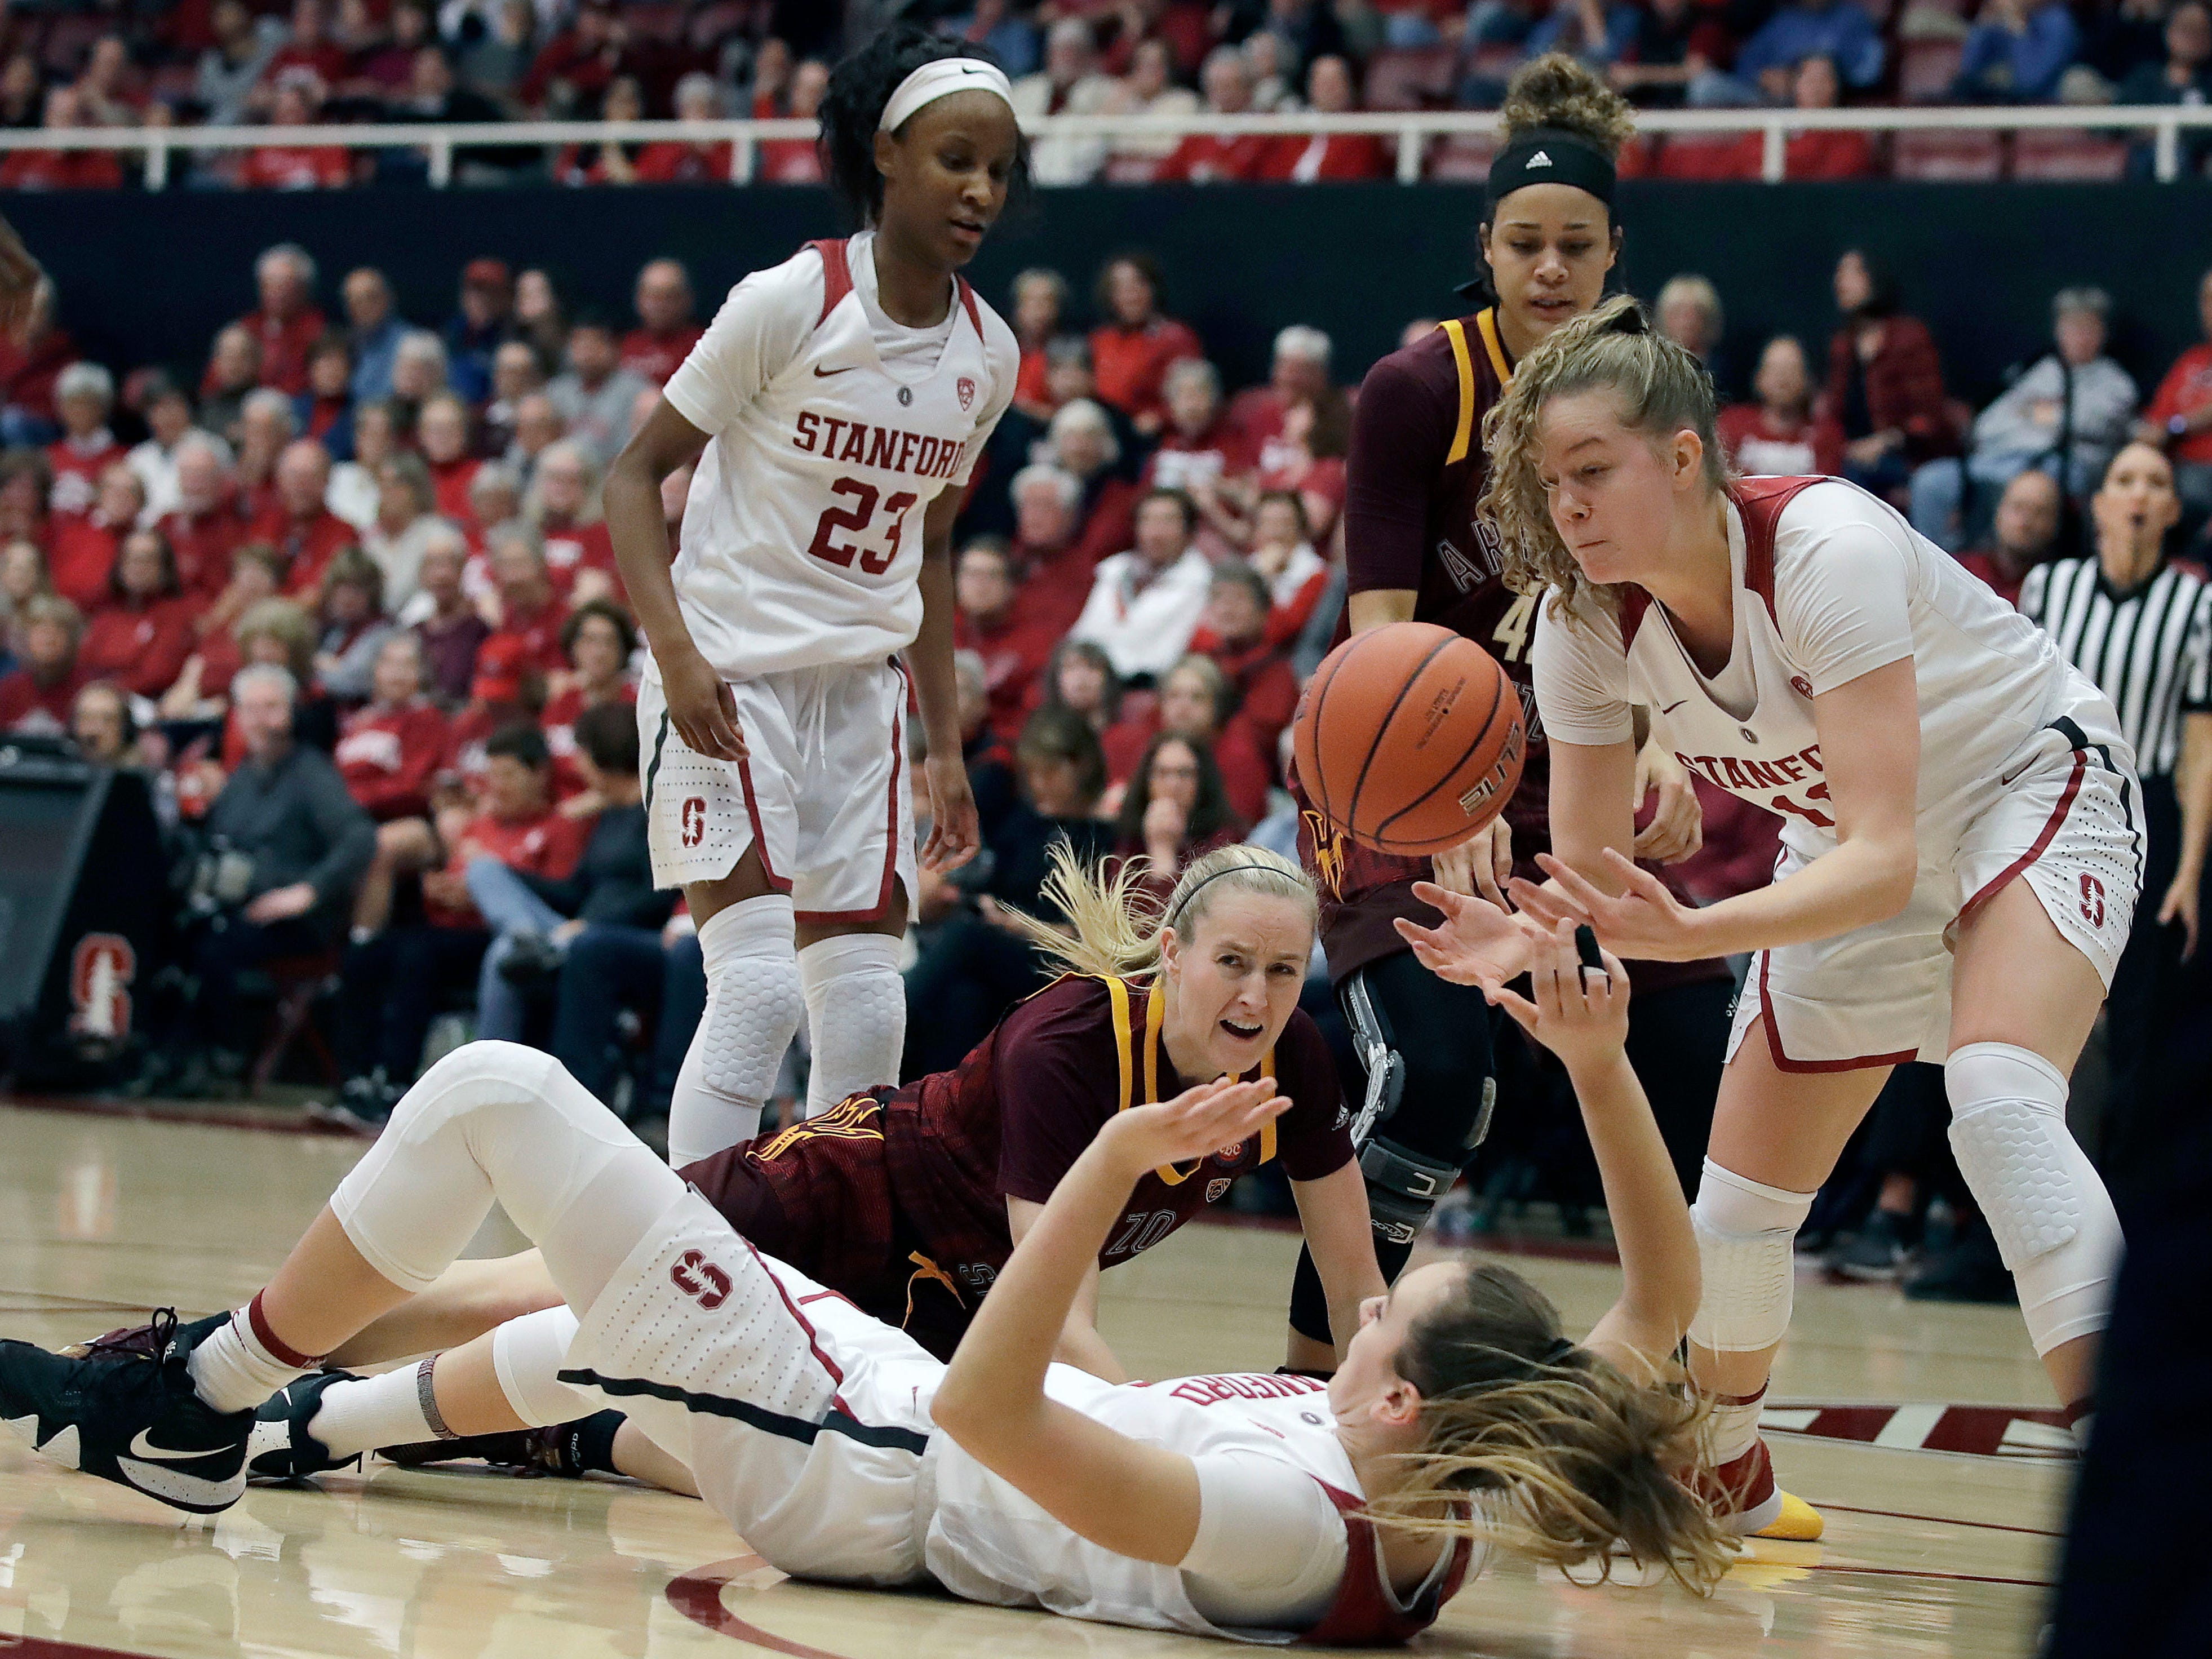 Stanford's Alyssa Jerome, right, reaches for a loose ball between Arizona State's Courtney Ekmark and Alanna Smith, foreground on floor, during the first half of an NCAA college basketball game Sunday, Feb. 24, 2019, in Stanford, Calif.